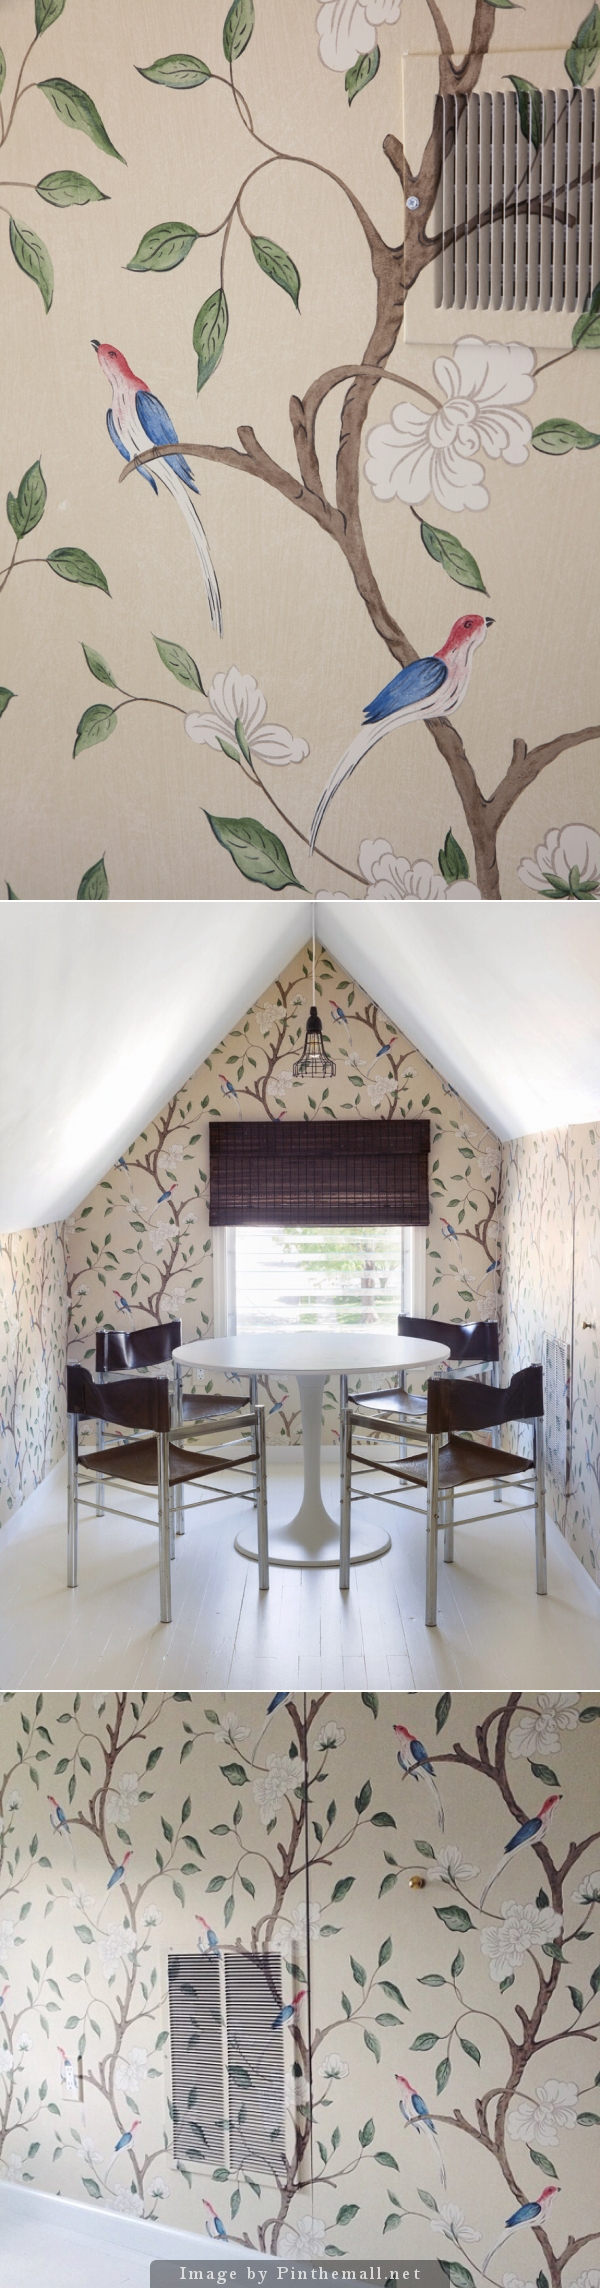 Wow, look at the wallpaper job over the wall vents! wallpaper: Eleonora by Zoffany